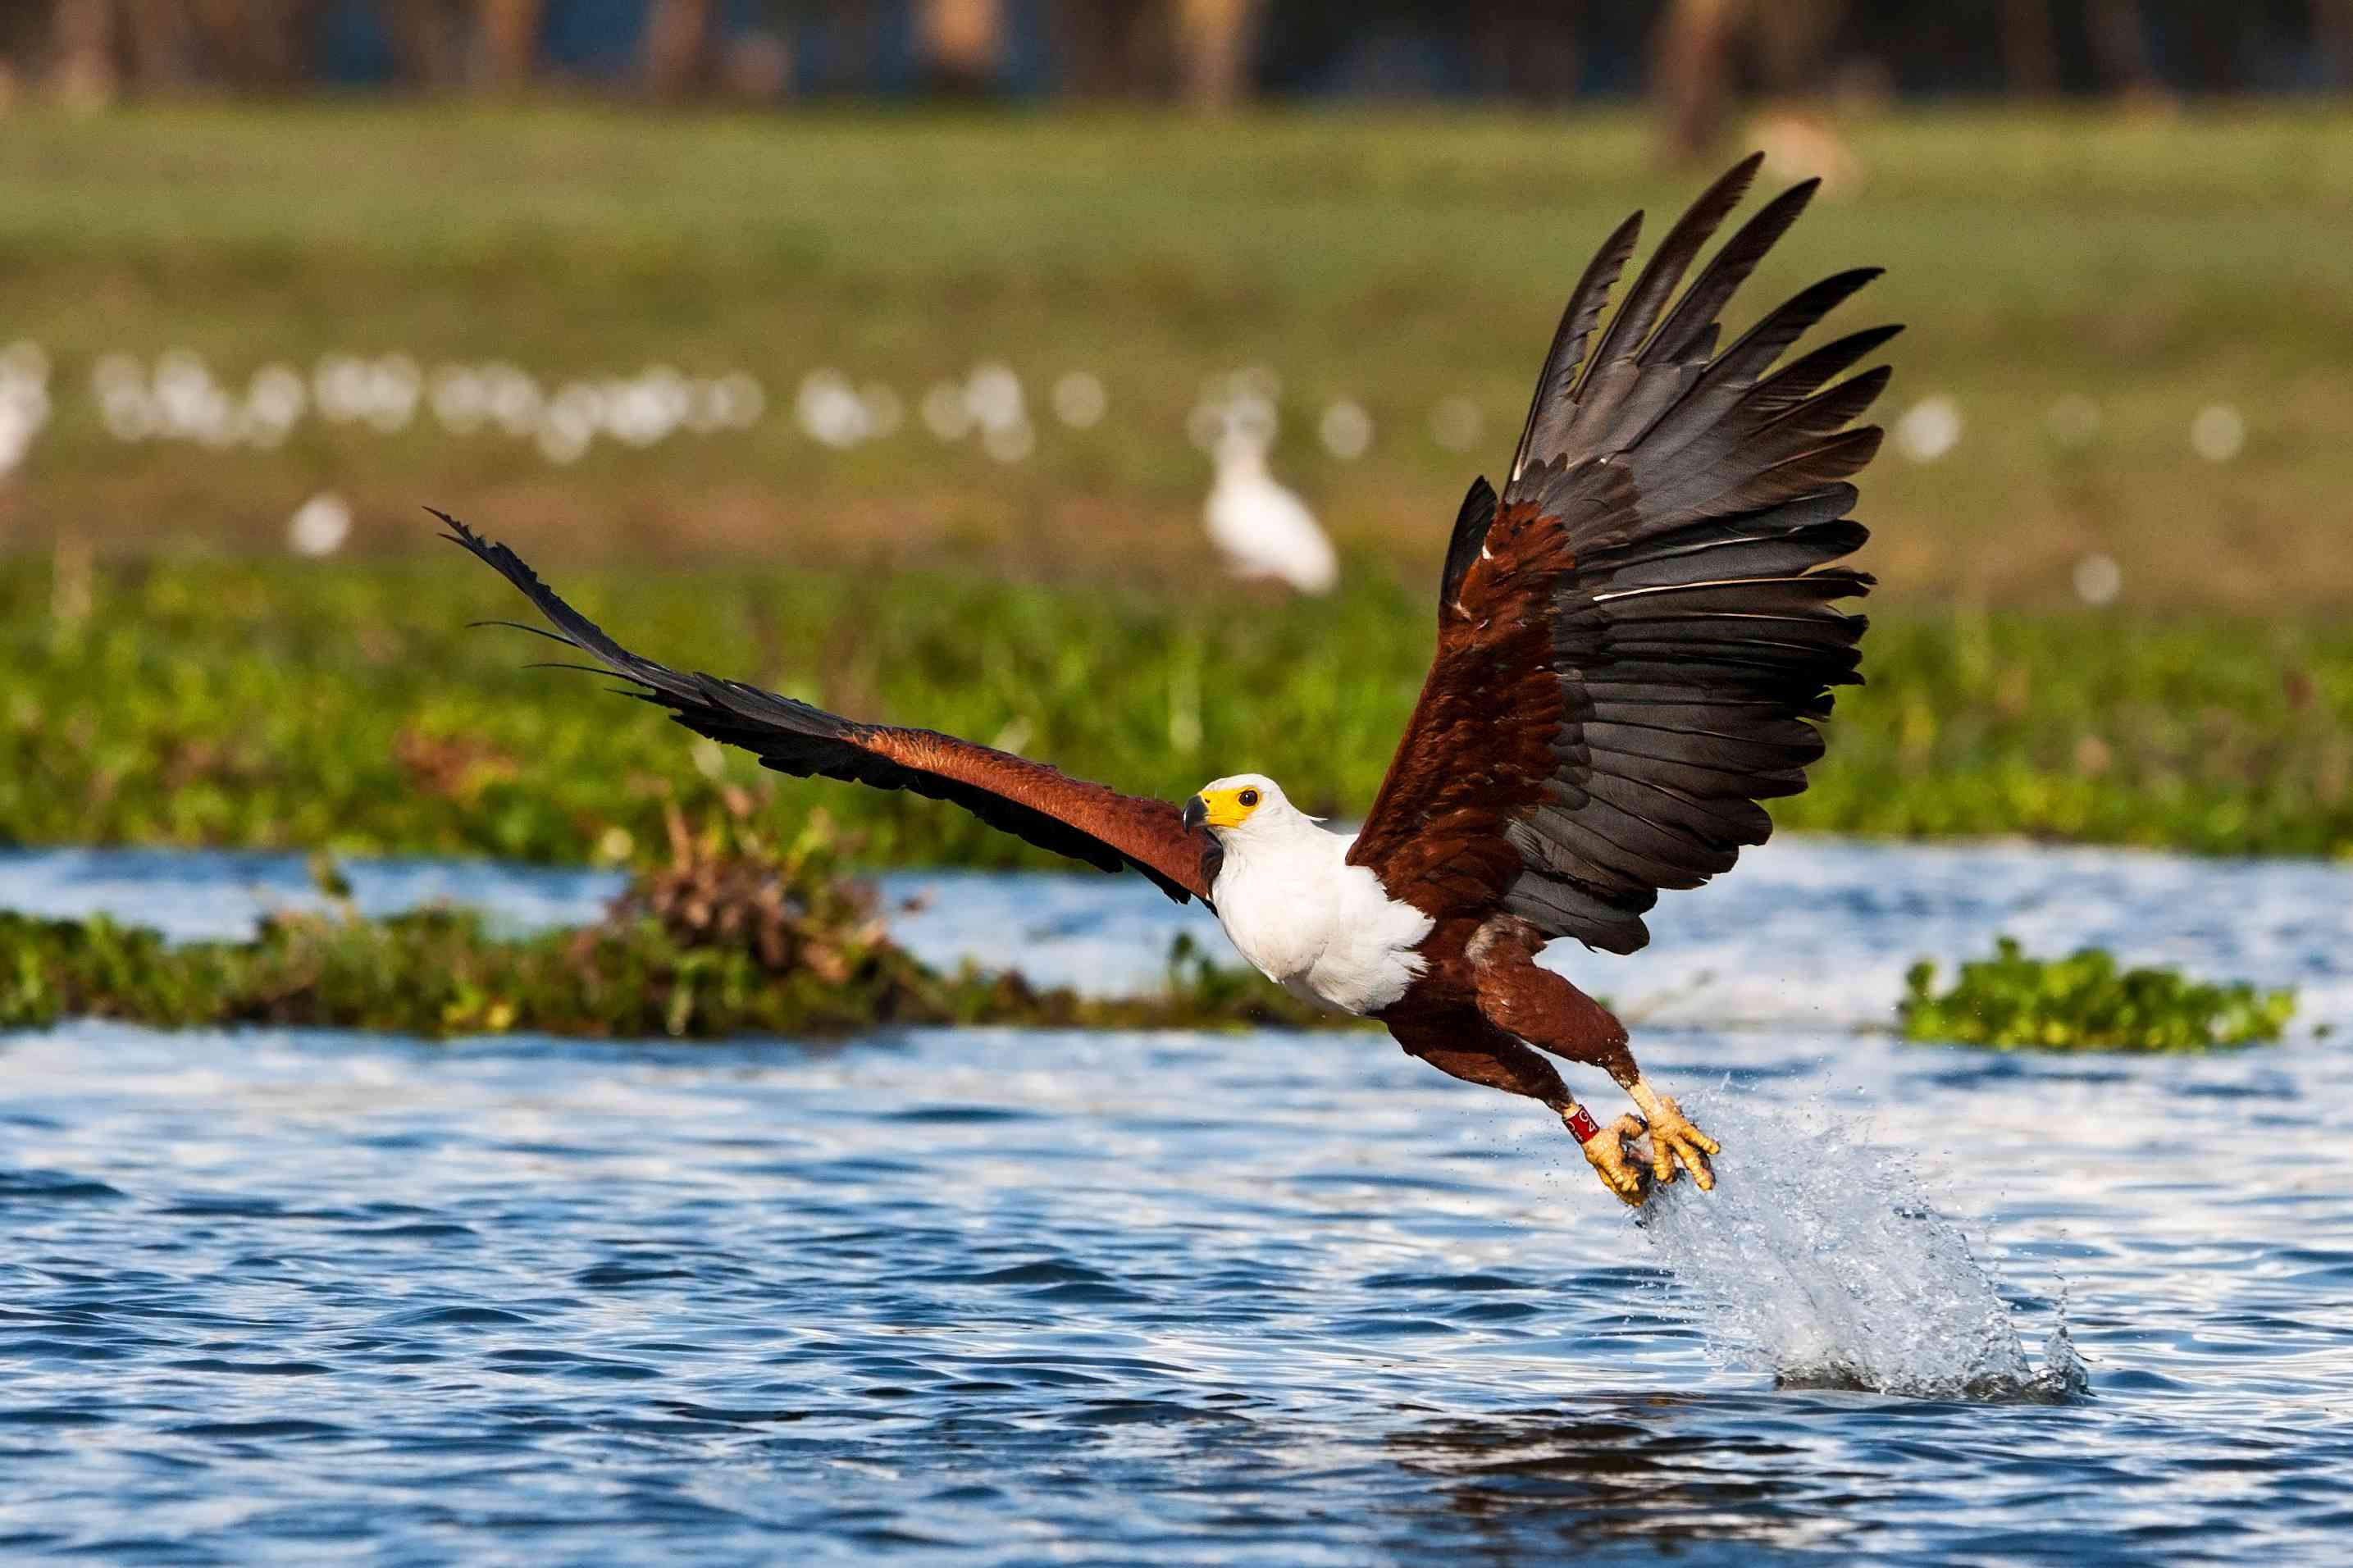 African fish eagle taking off from the water